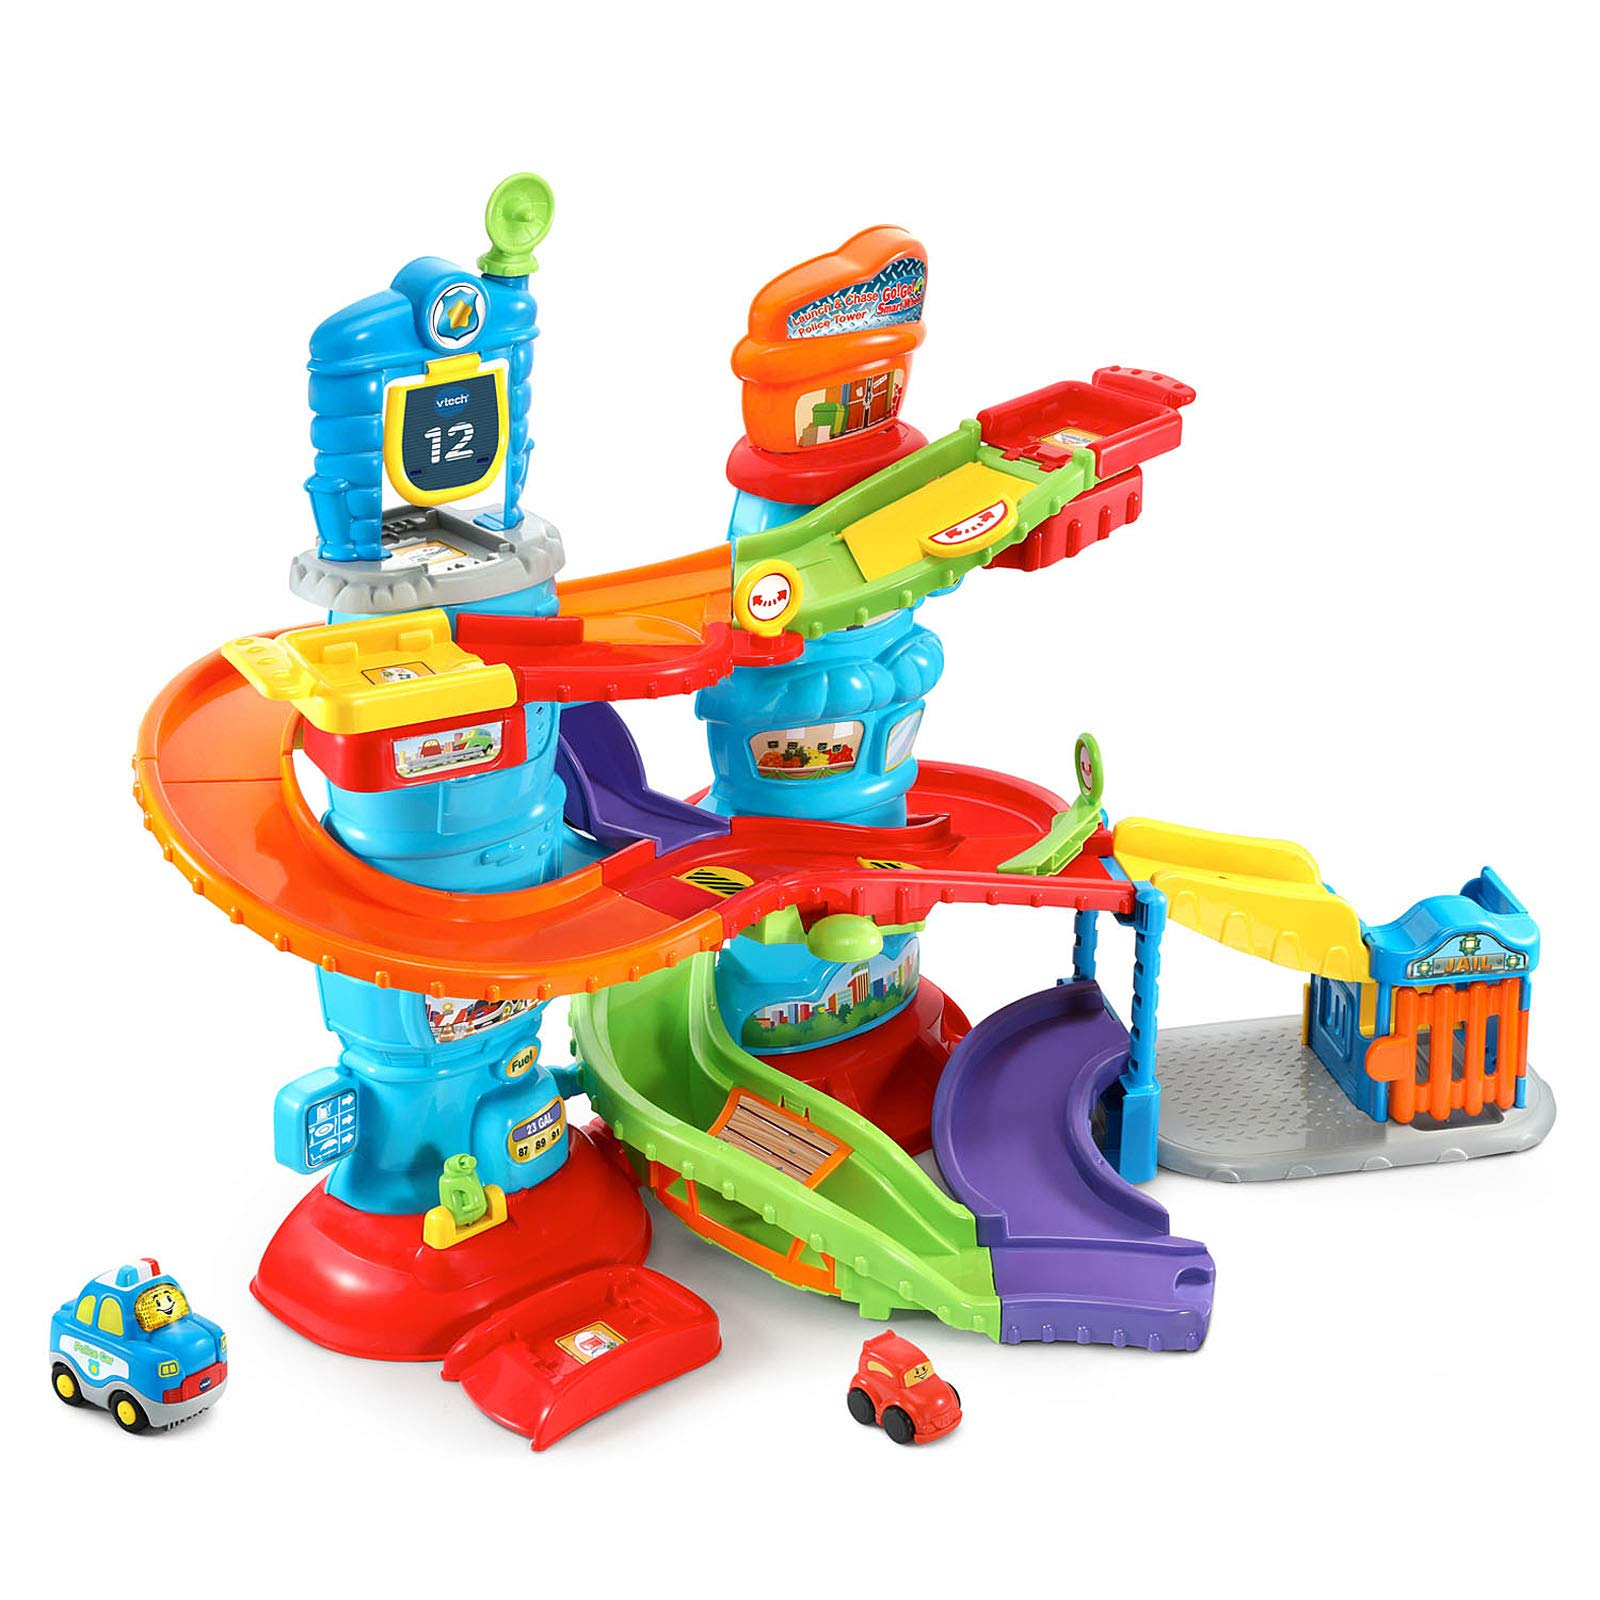 VTech Go! Go! Smart Wheels Launch and Chase Police Tower